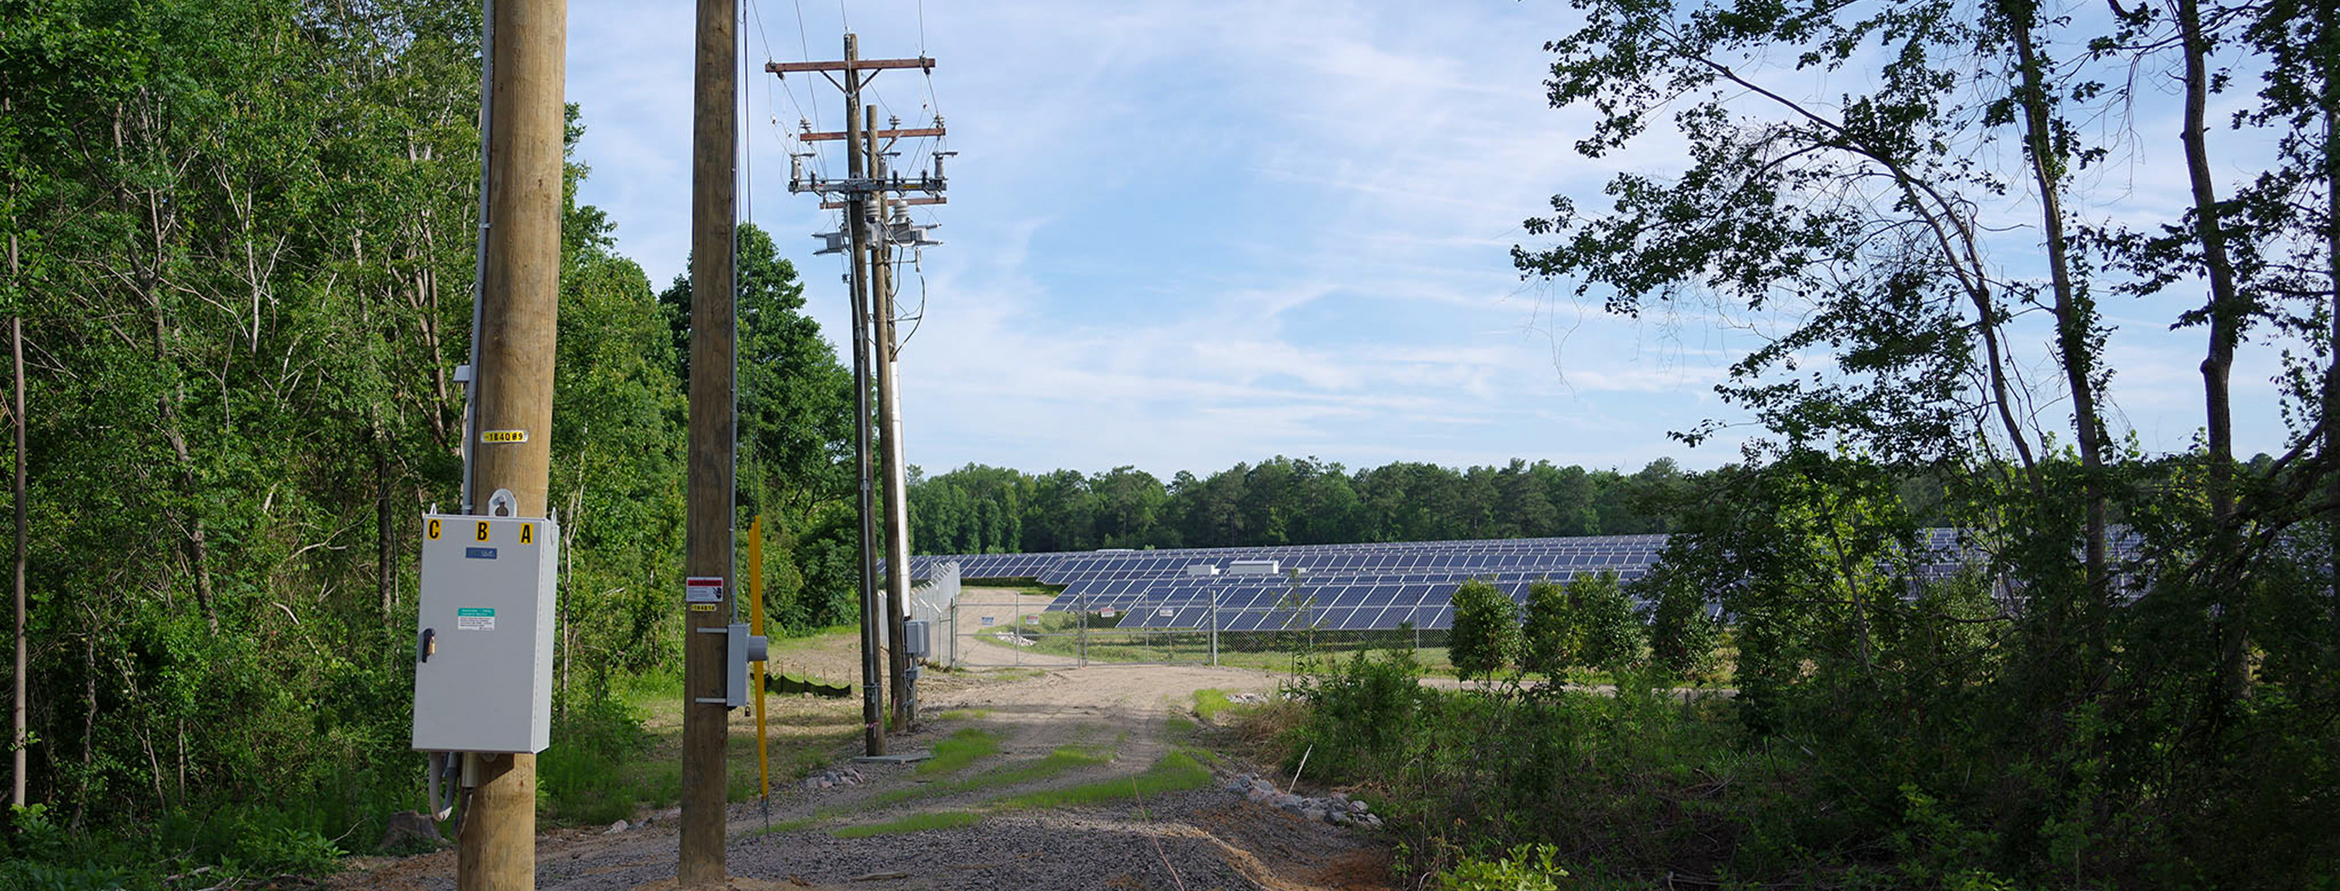 Power-Lines-And-Solar-Farm-In-Background.jpg